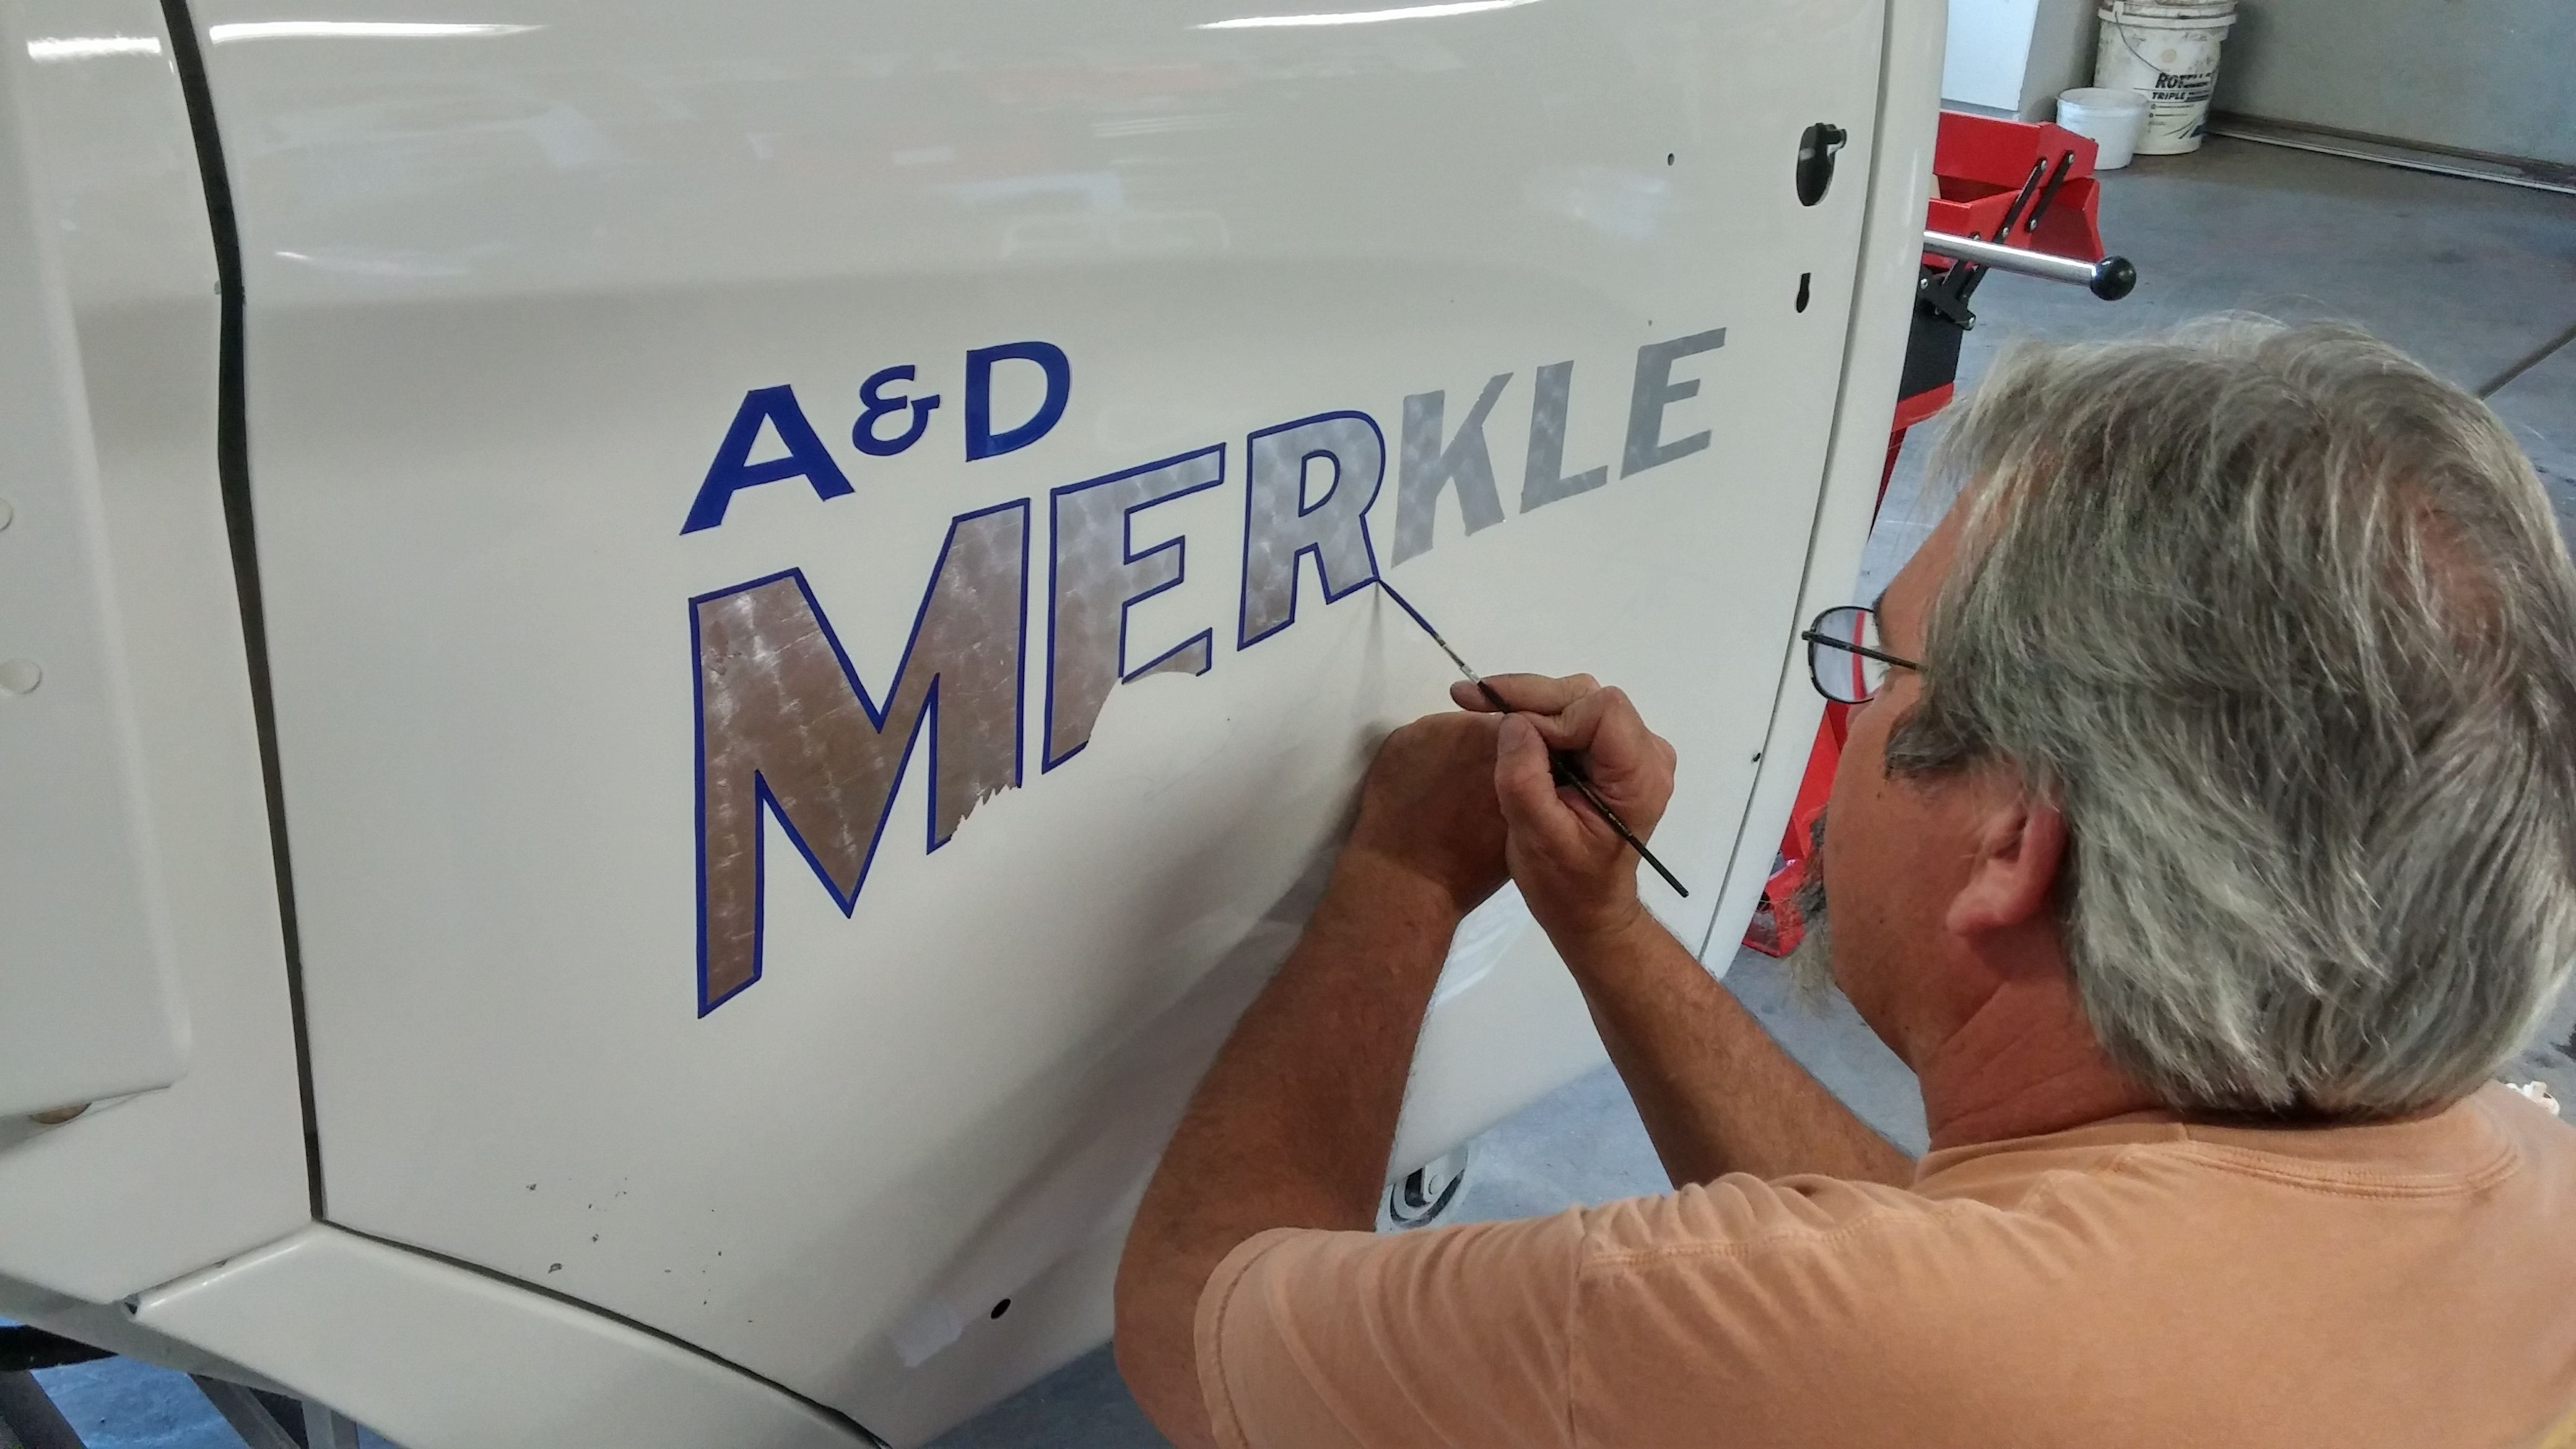 Beautiful Silver Leaf Hand Lettered Farm Truck By Ln Signs Ocala Fl 352 304 7355 Www Lnsigns Com Ocala Farm Signs Fa Truck Lettering Farm Signs Sumter County